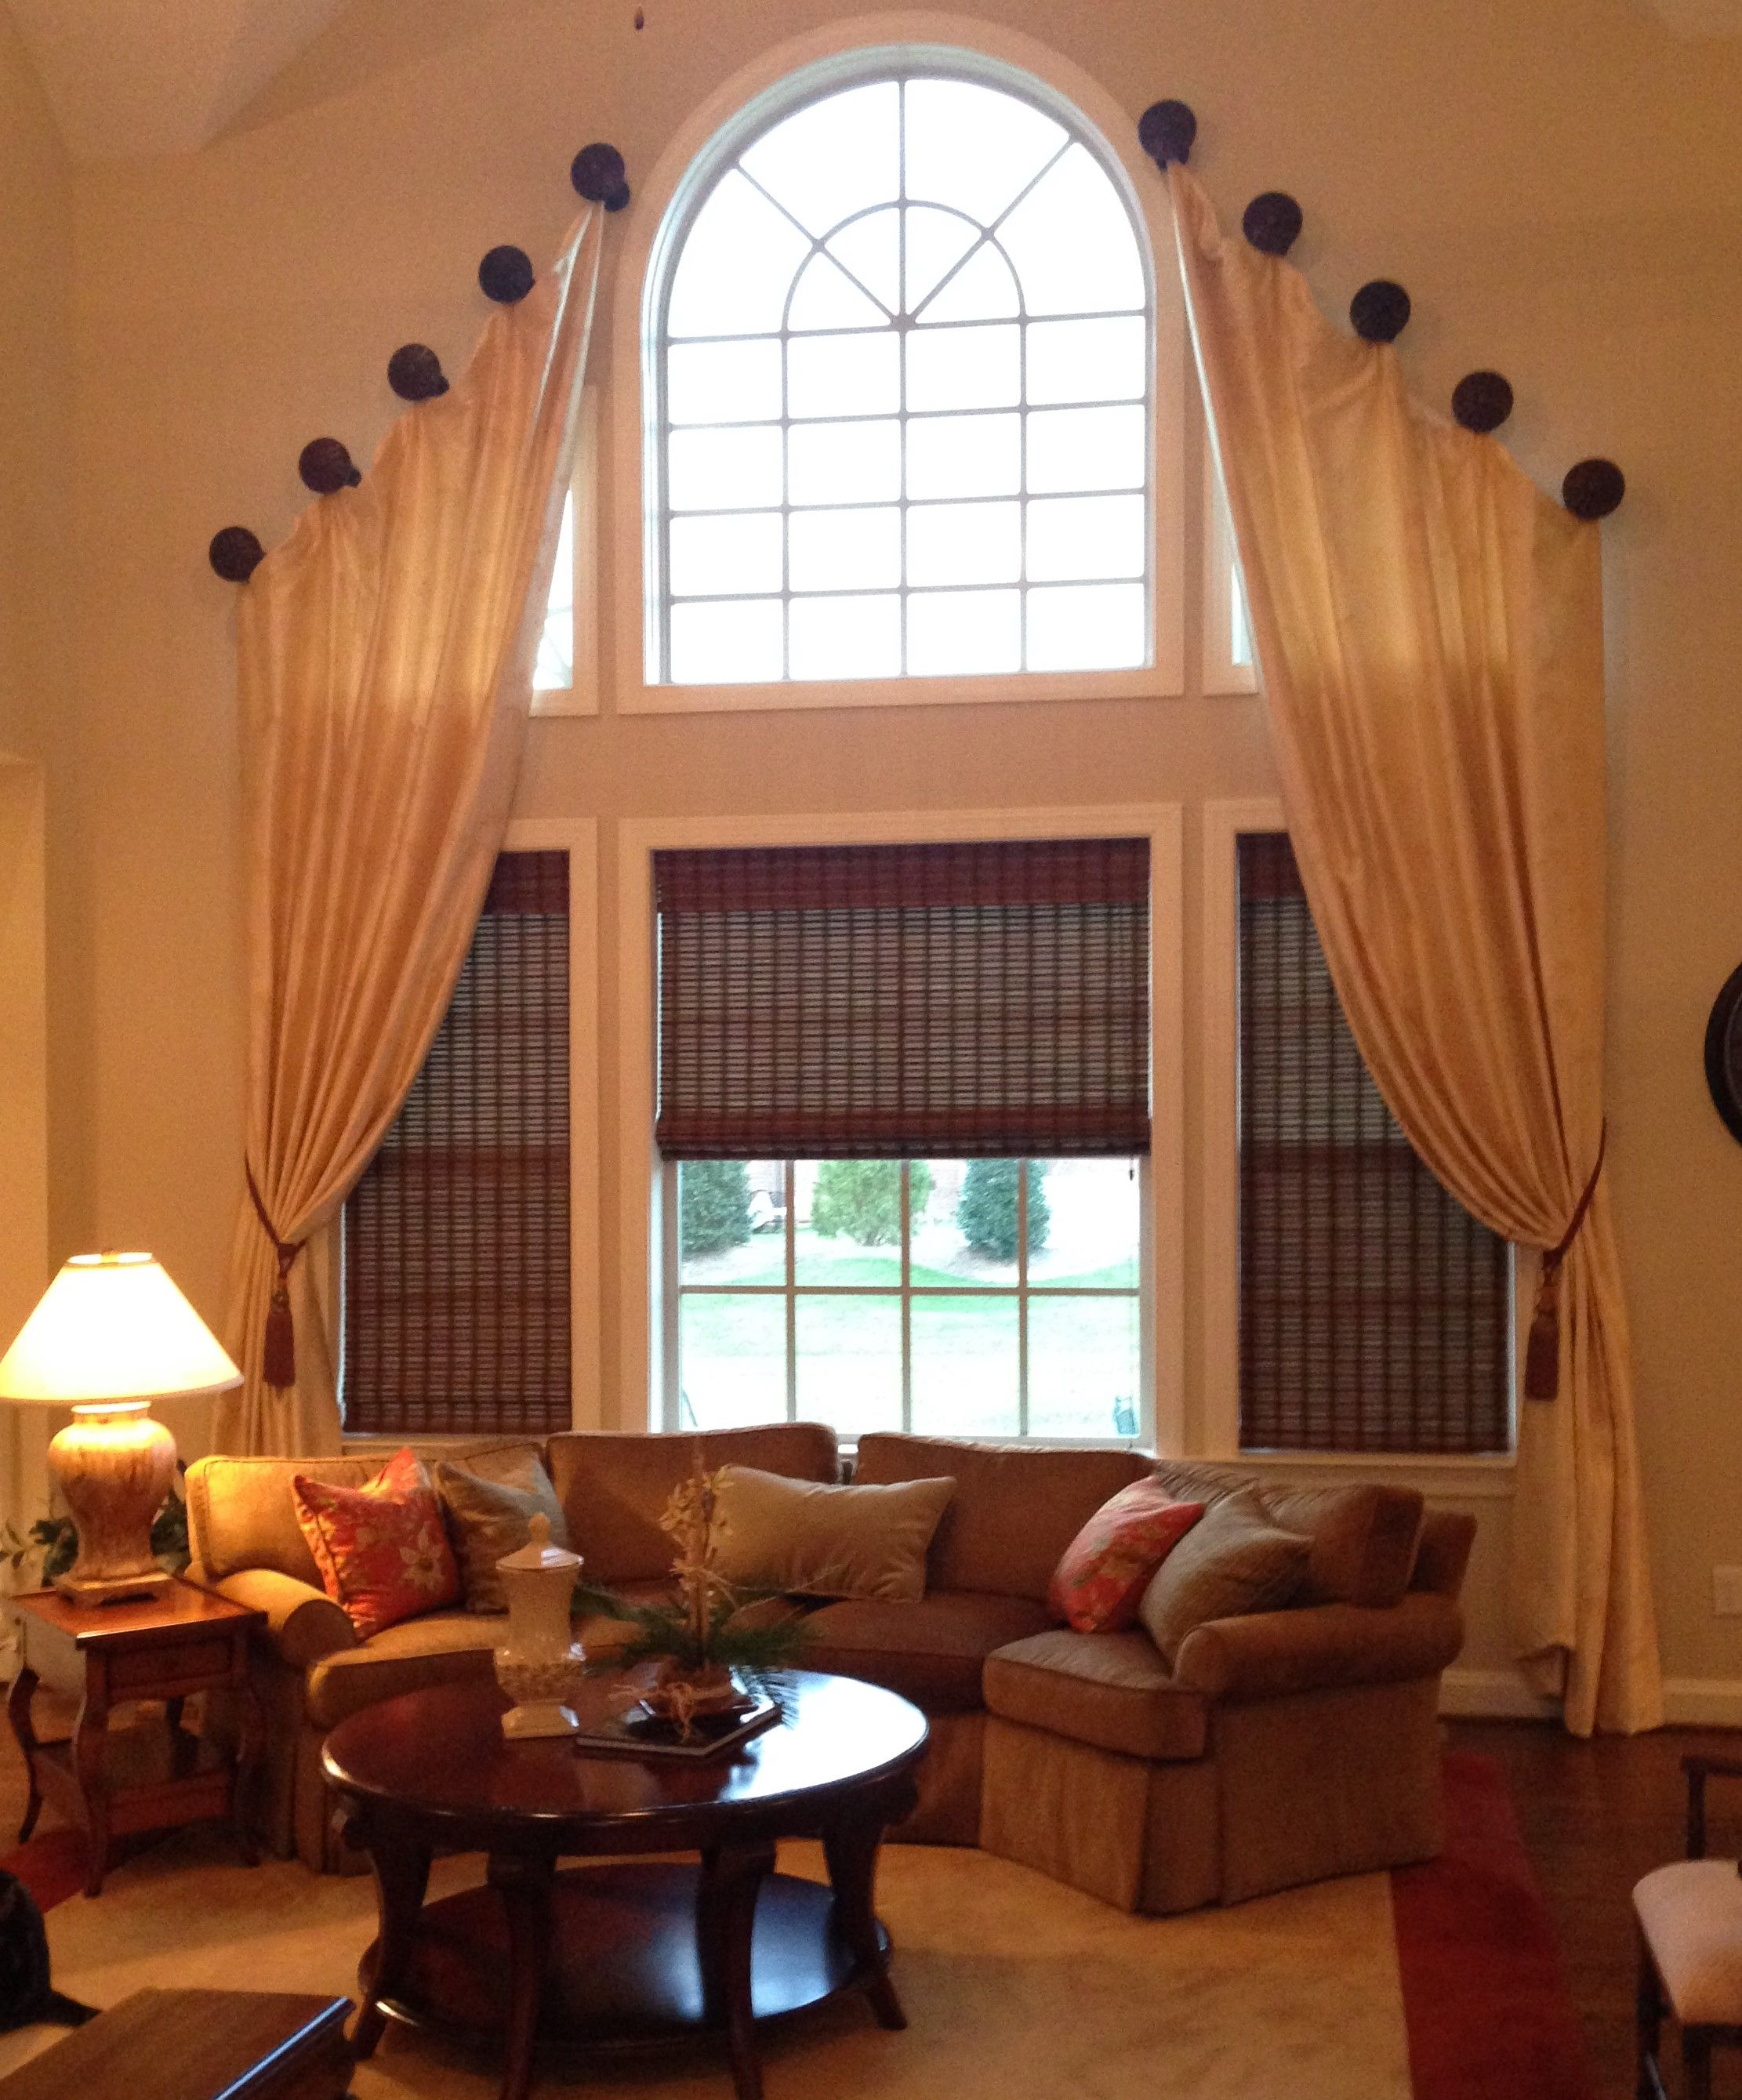 A Two Story Living Room Requires Dramatic Window Treatment Medallions Mounted Above Palladian Windows Support Elegant Silk Draperies